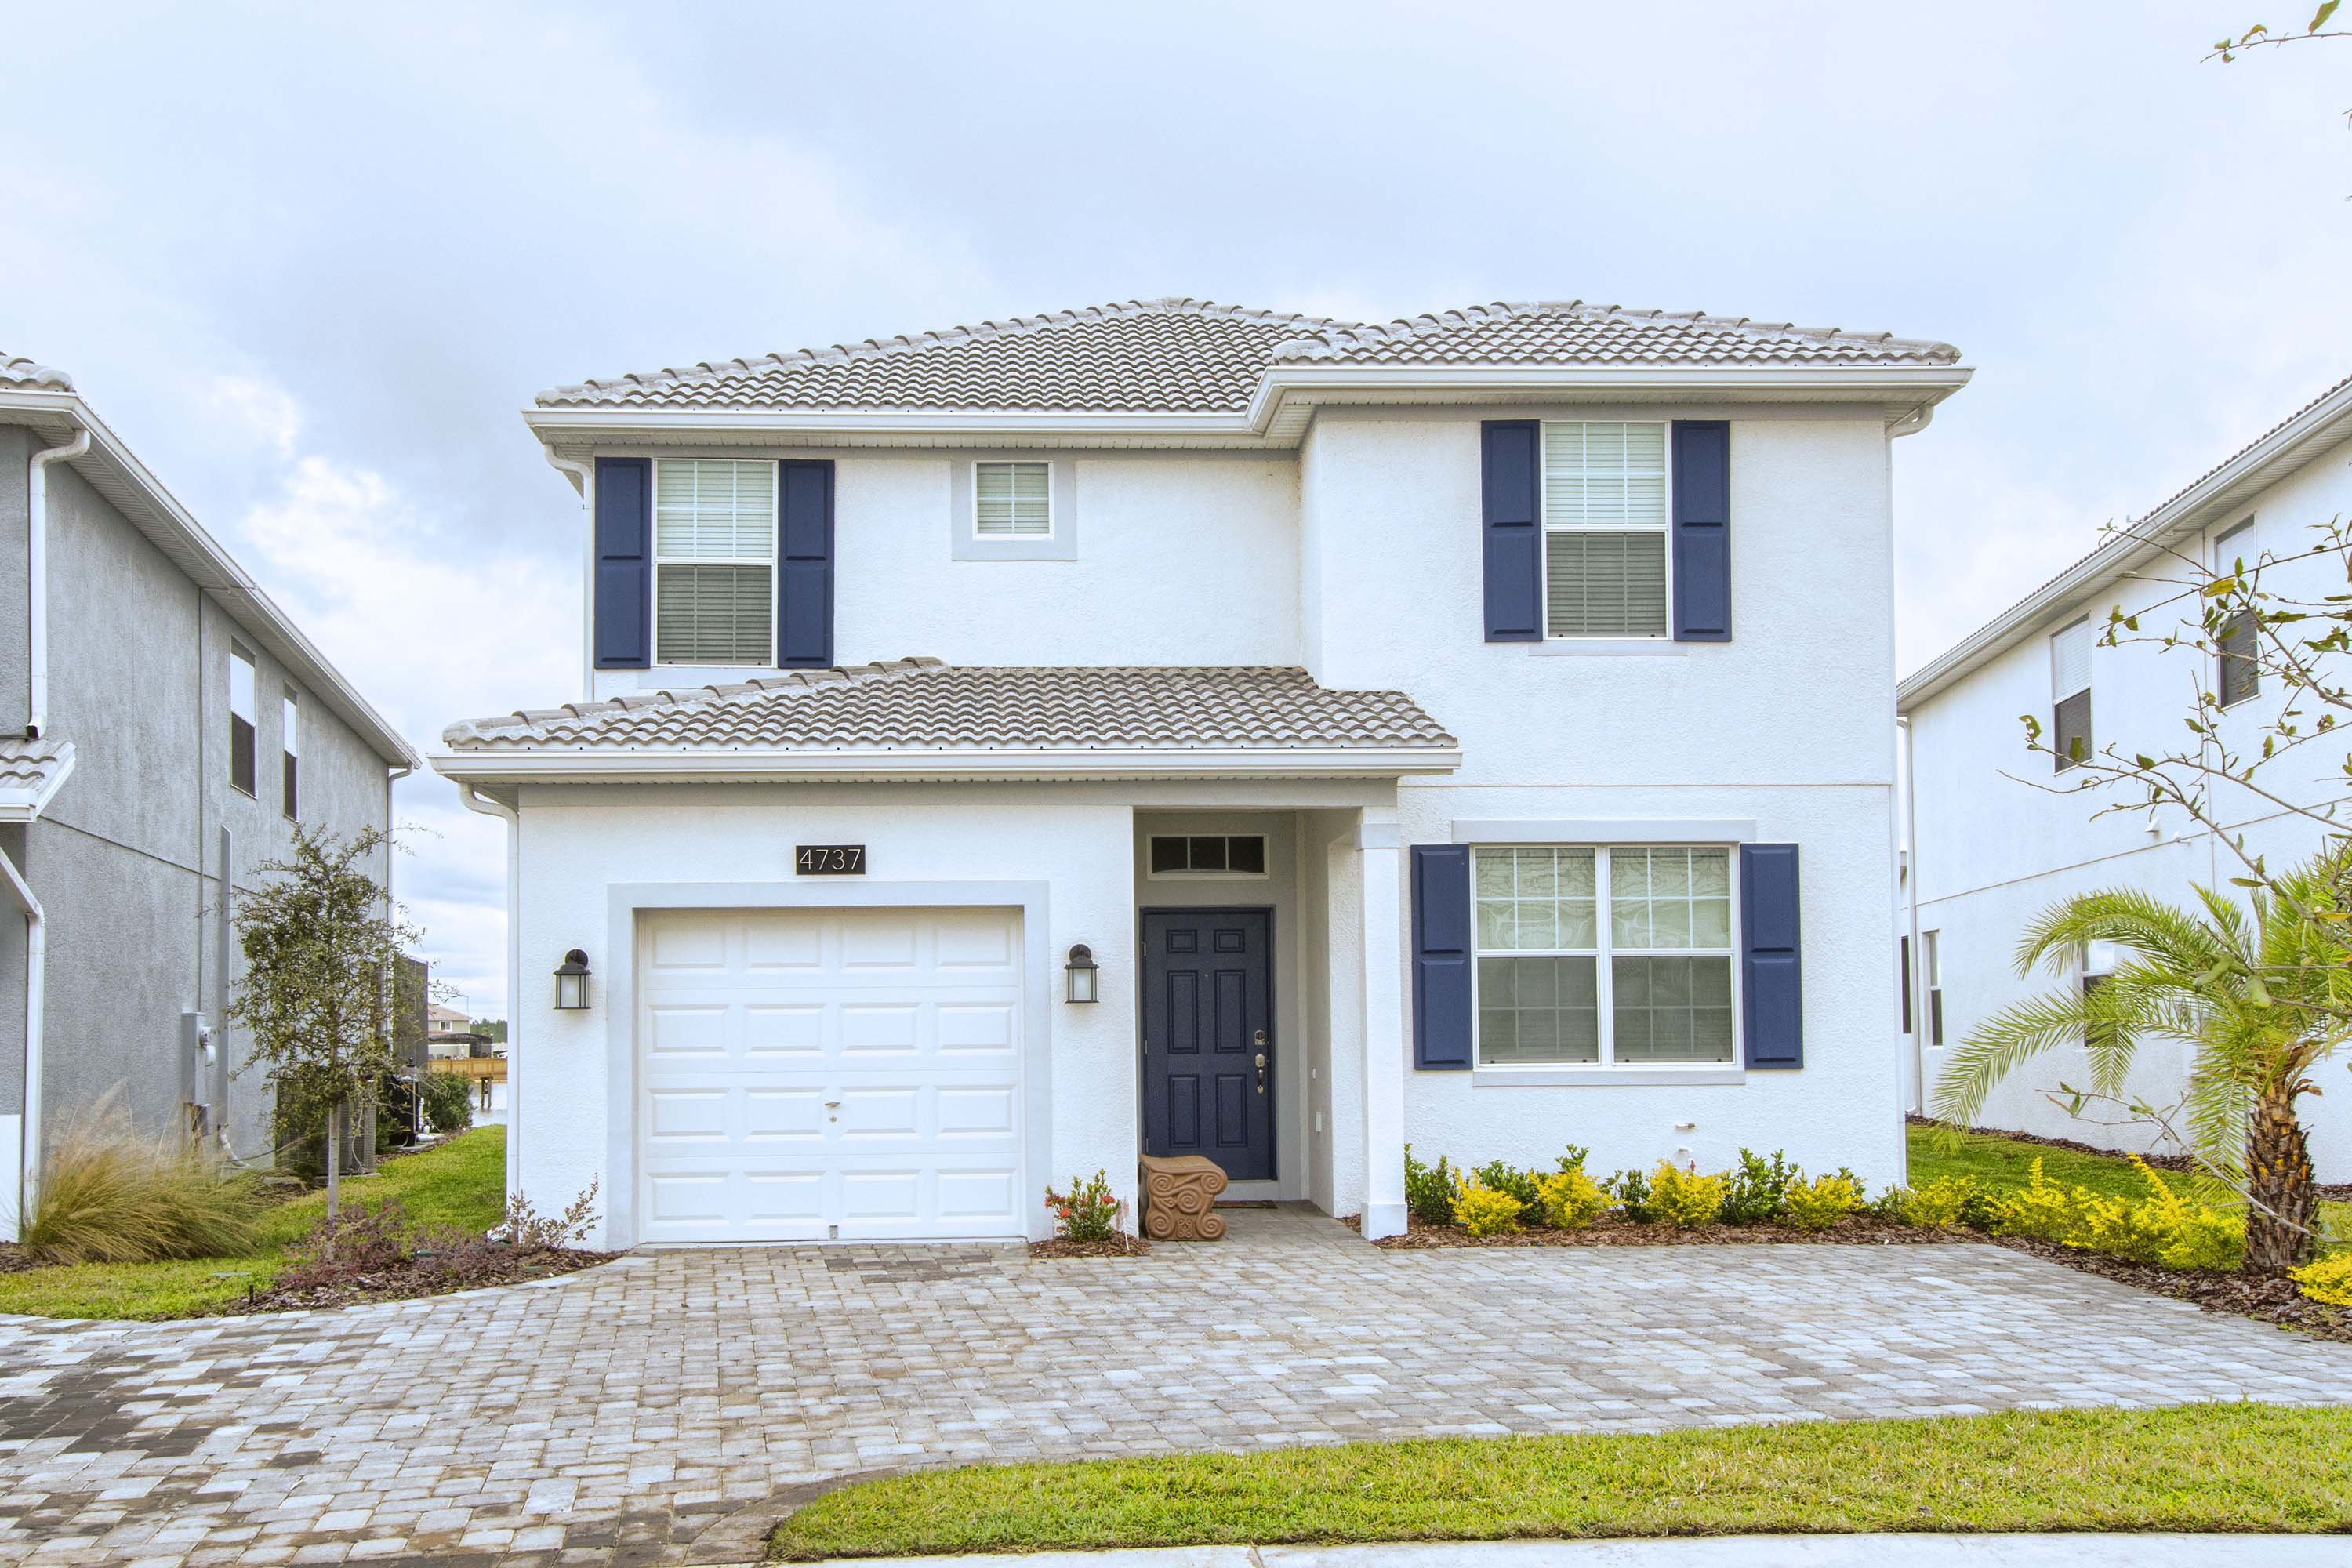 Vacation Homes In Kissimmee Fl Homemade Ftempo